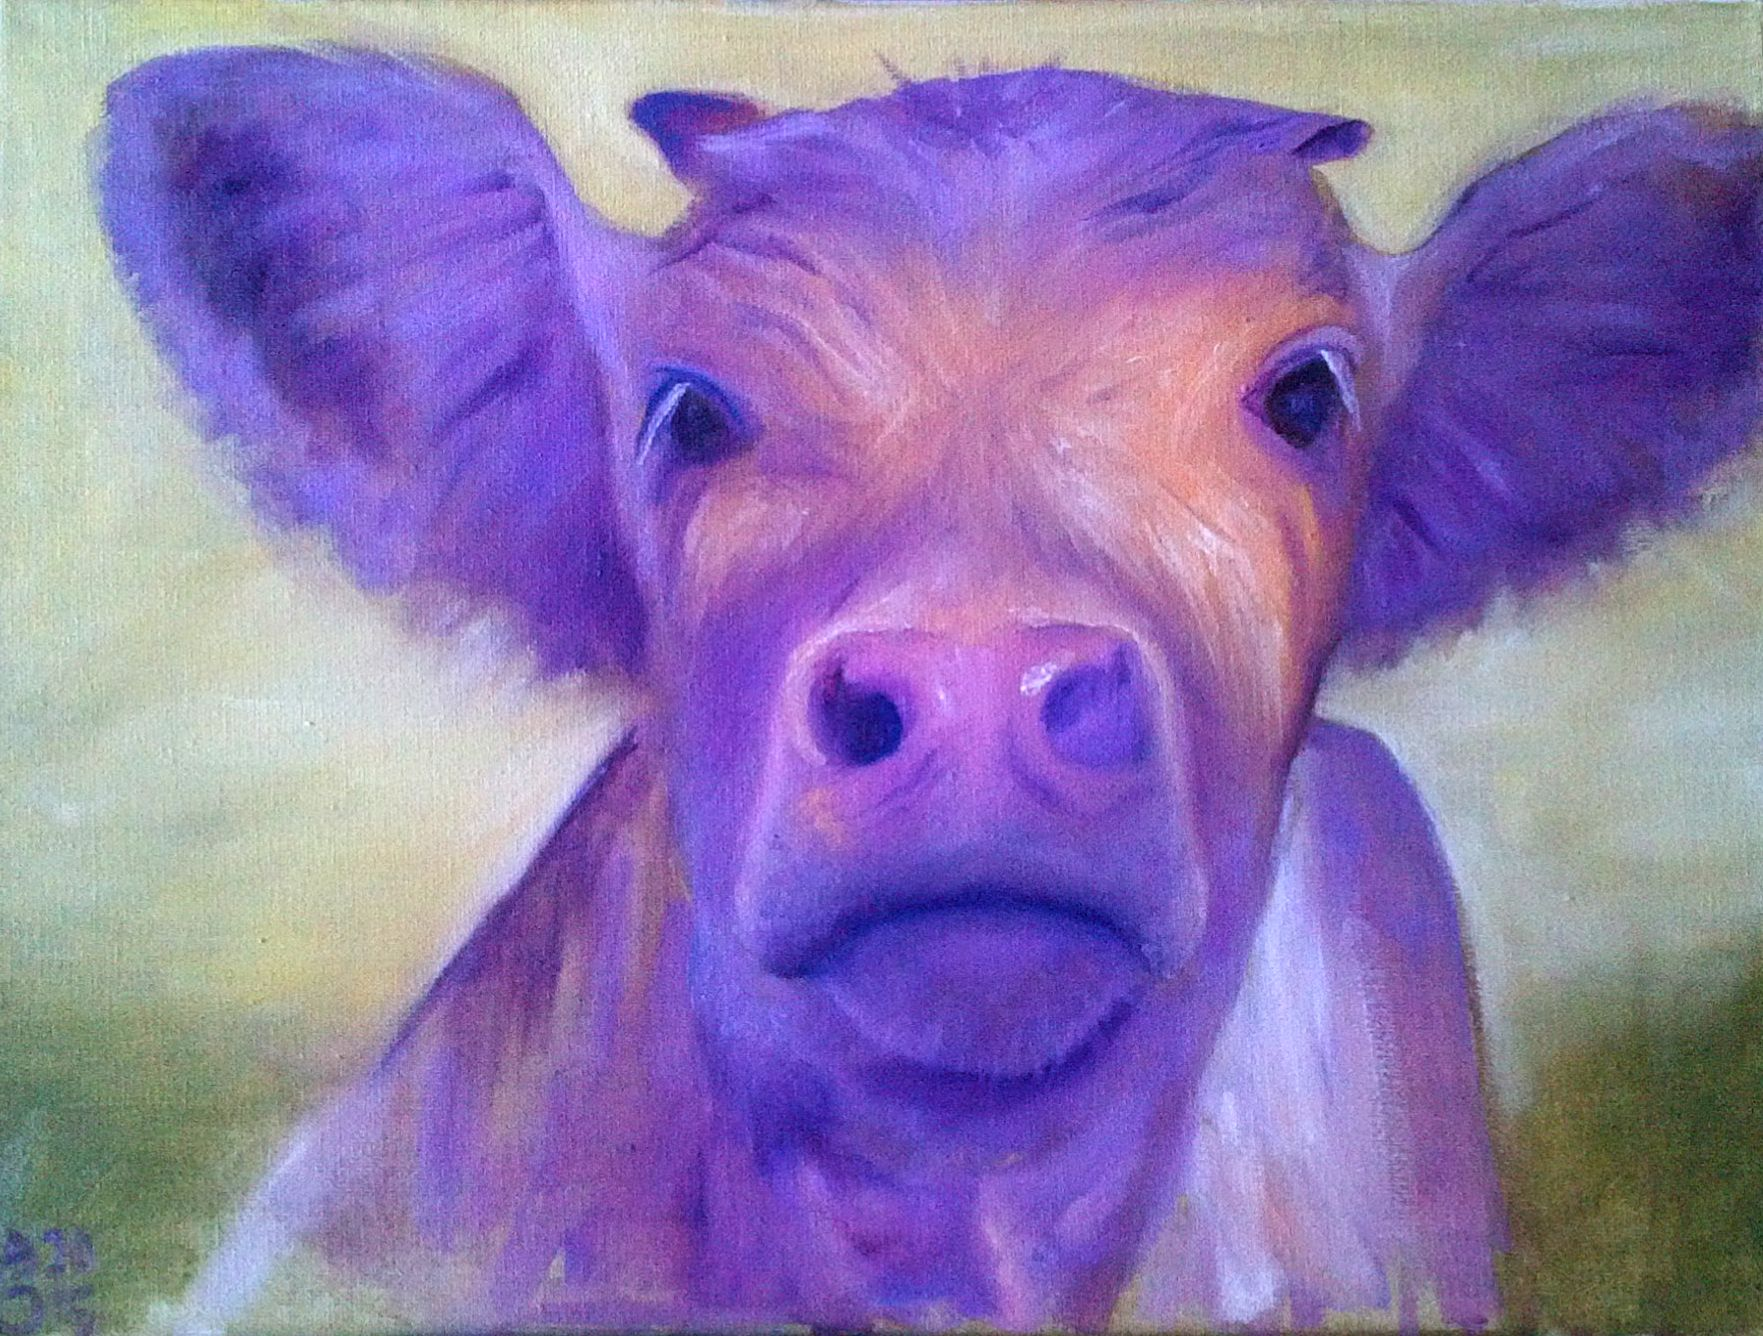 Cow, purple